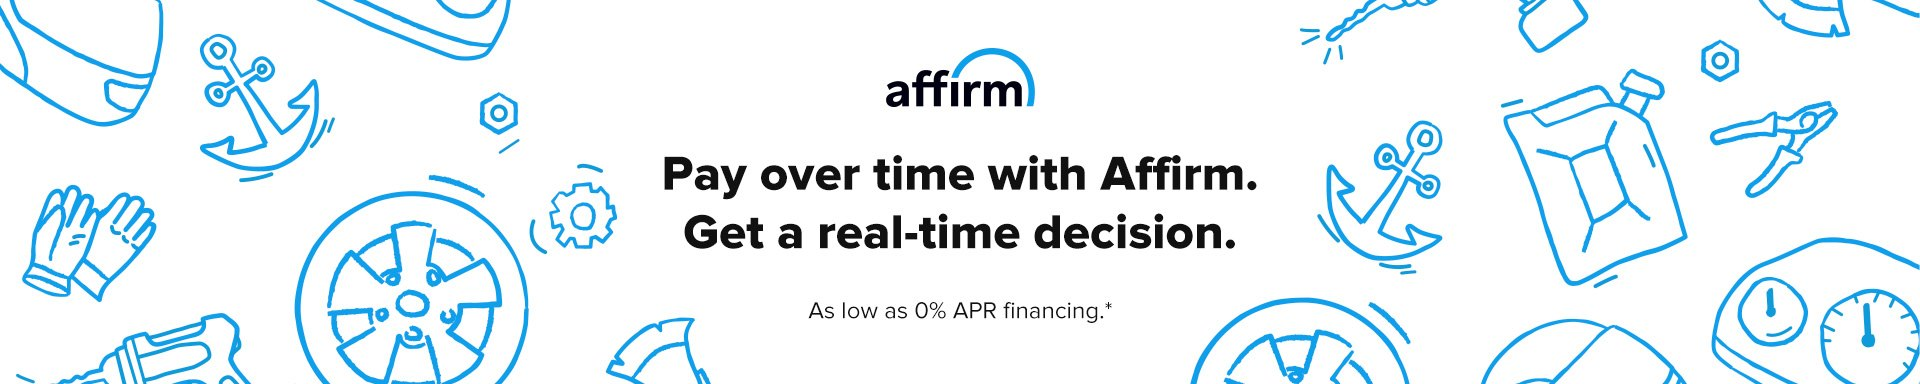 Affirm | Easy Financing | Pay Later with Affirm